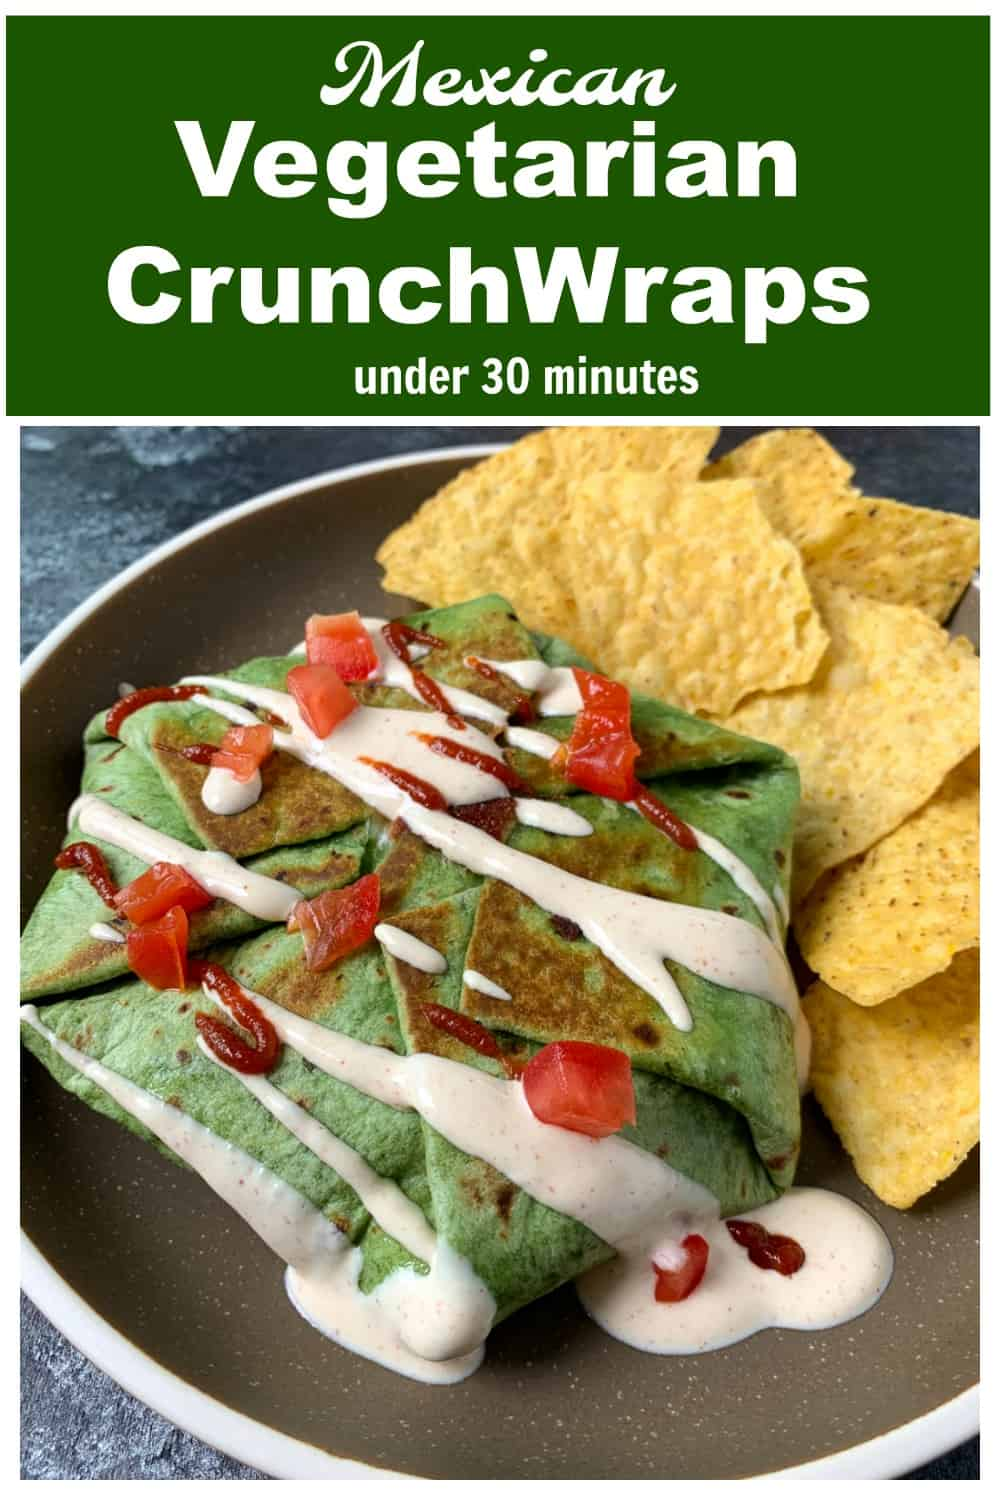 Taco bell style Vegetarian Crunchwrap Supreme without meat